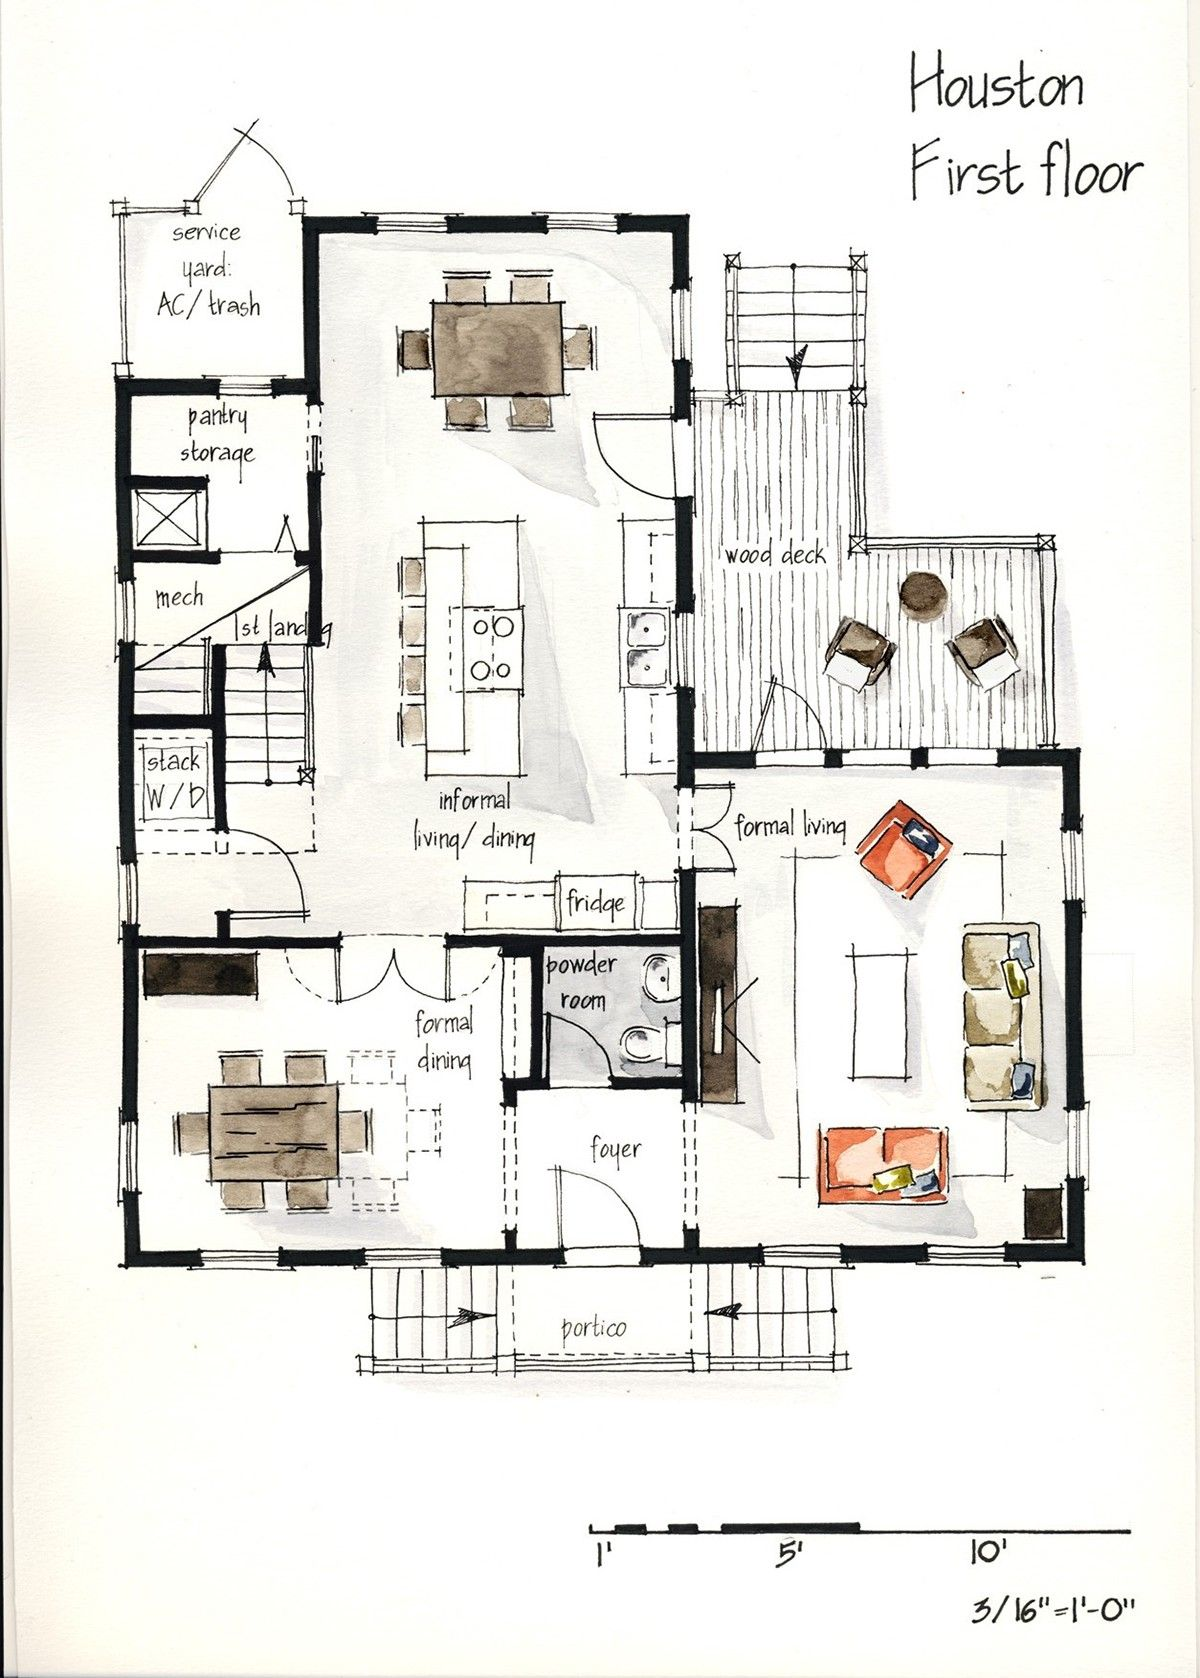 Real estate watercolor 2d floor plans part 1 on behance for Apartment 2d plans